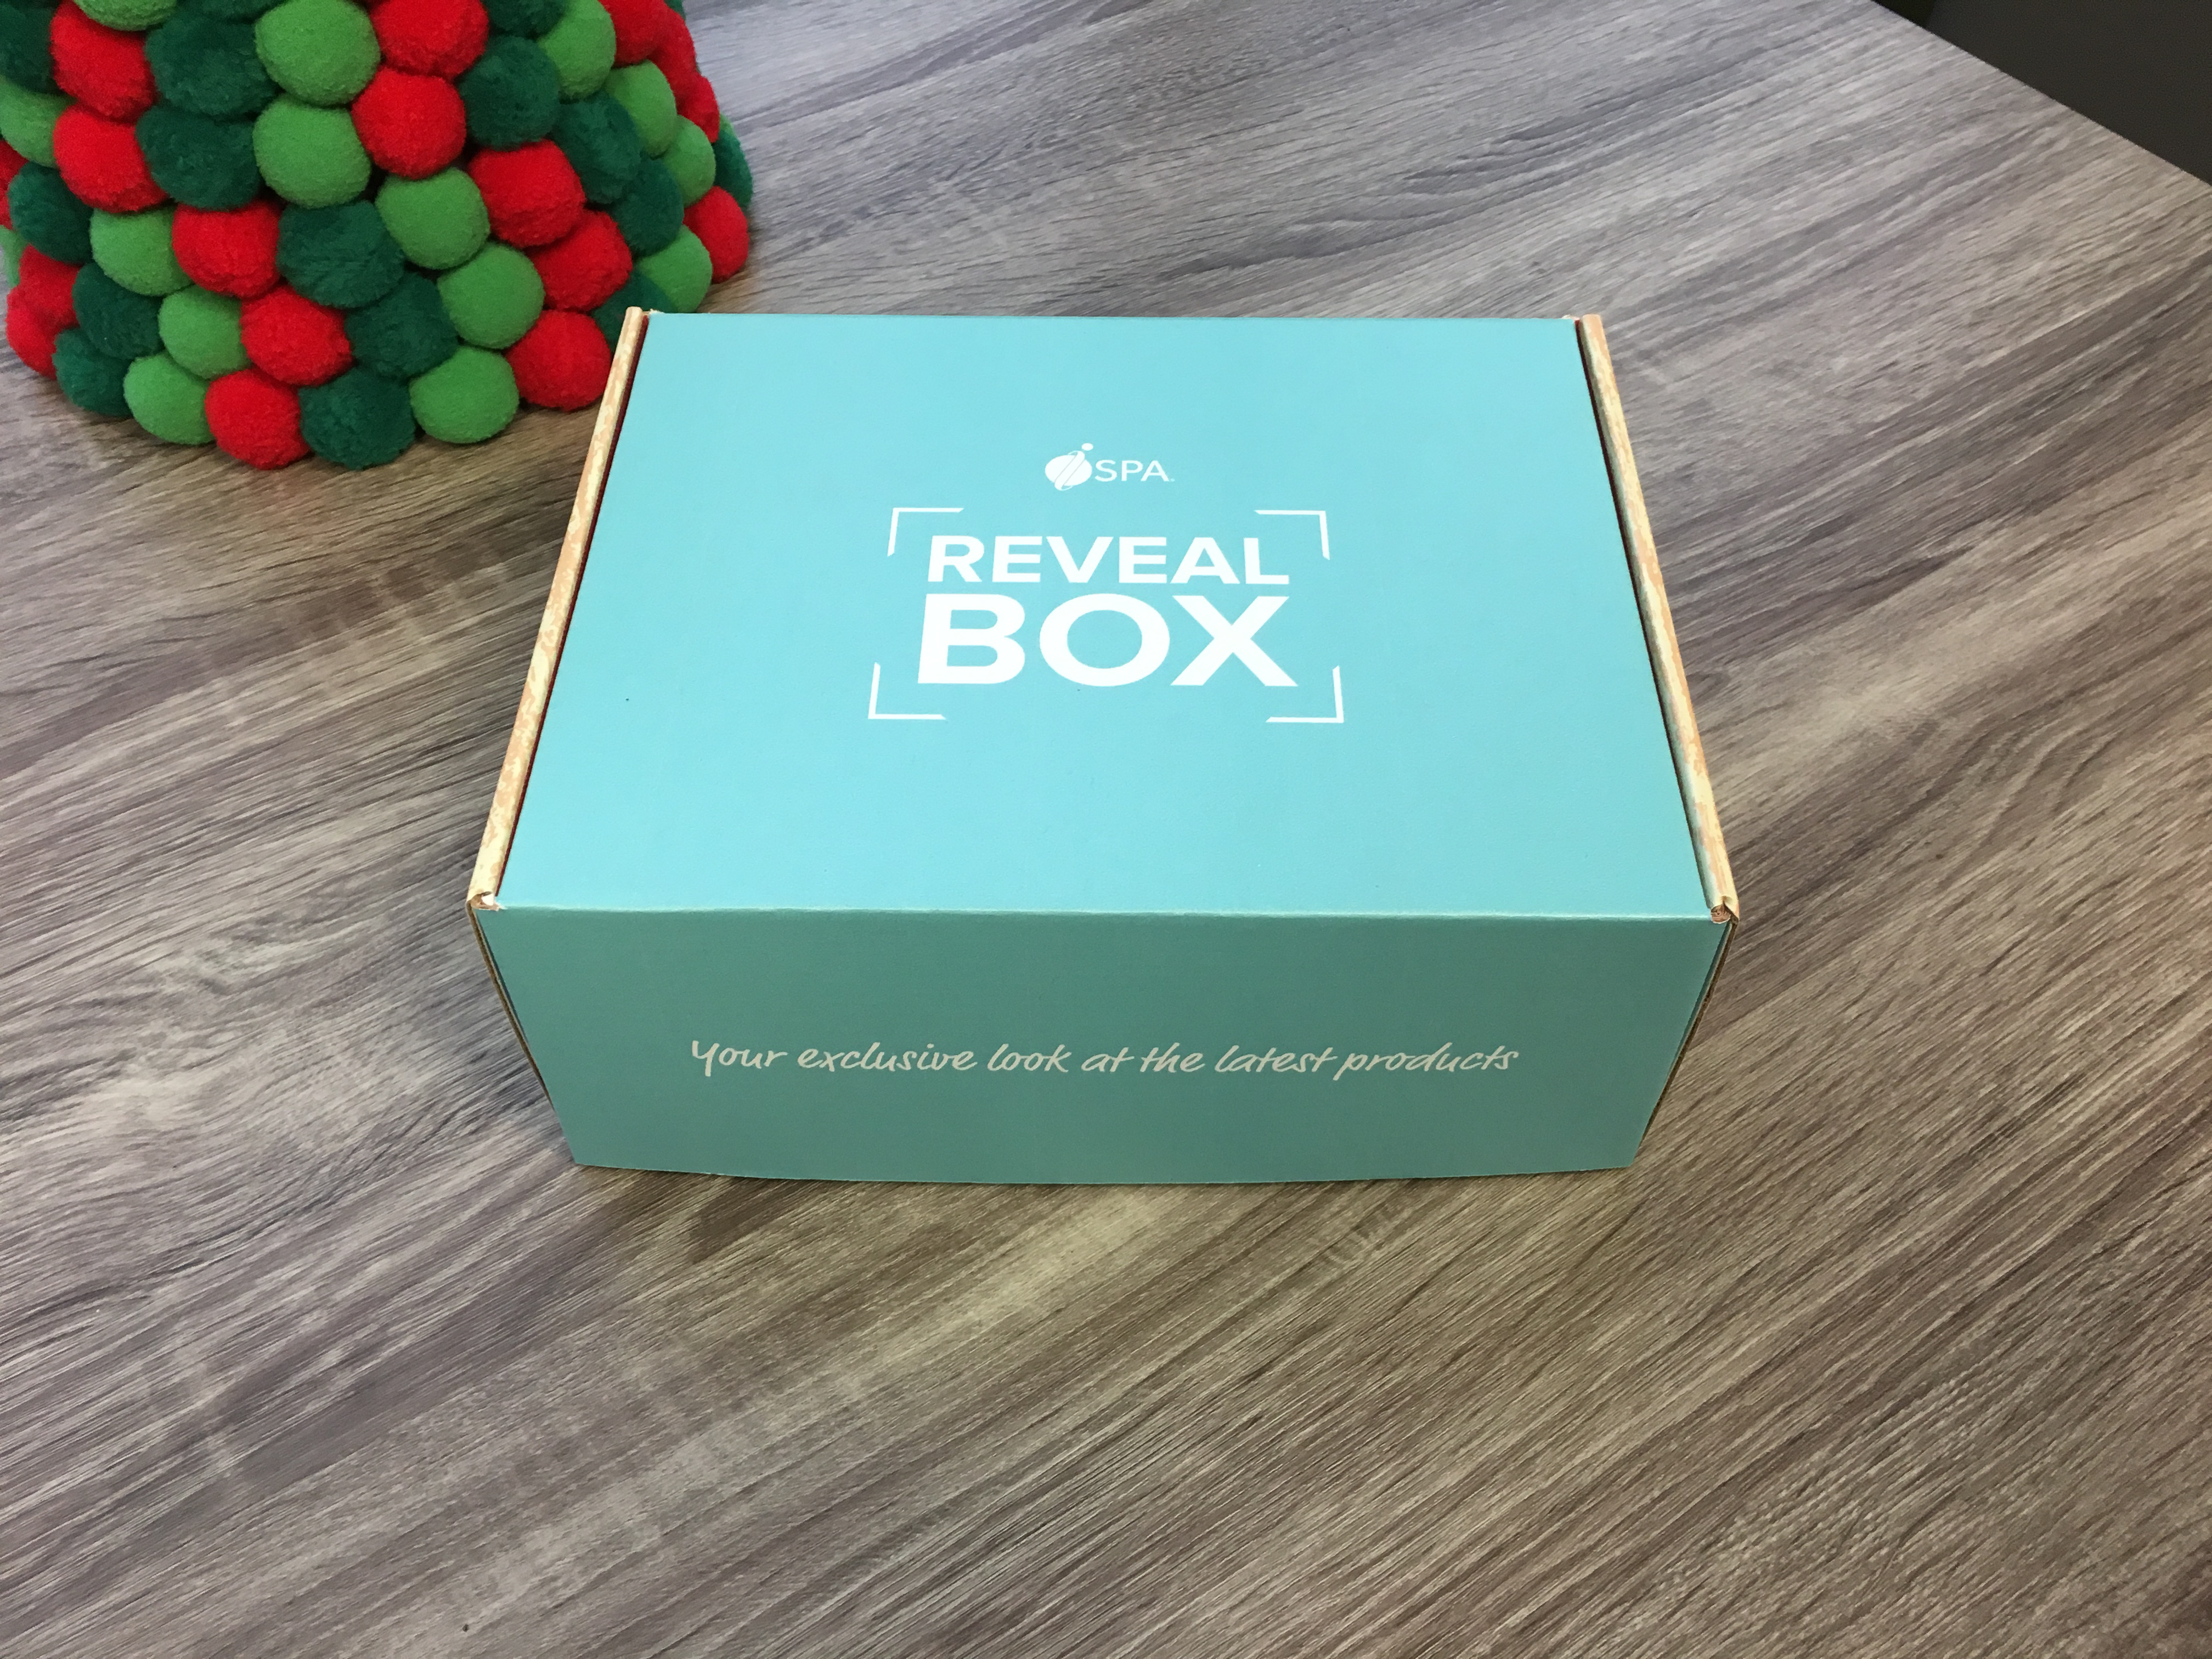 The December 2018 Reveal Box